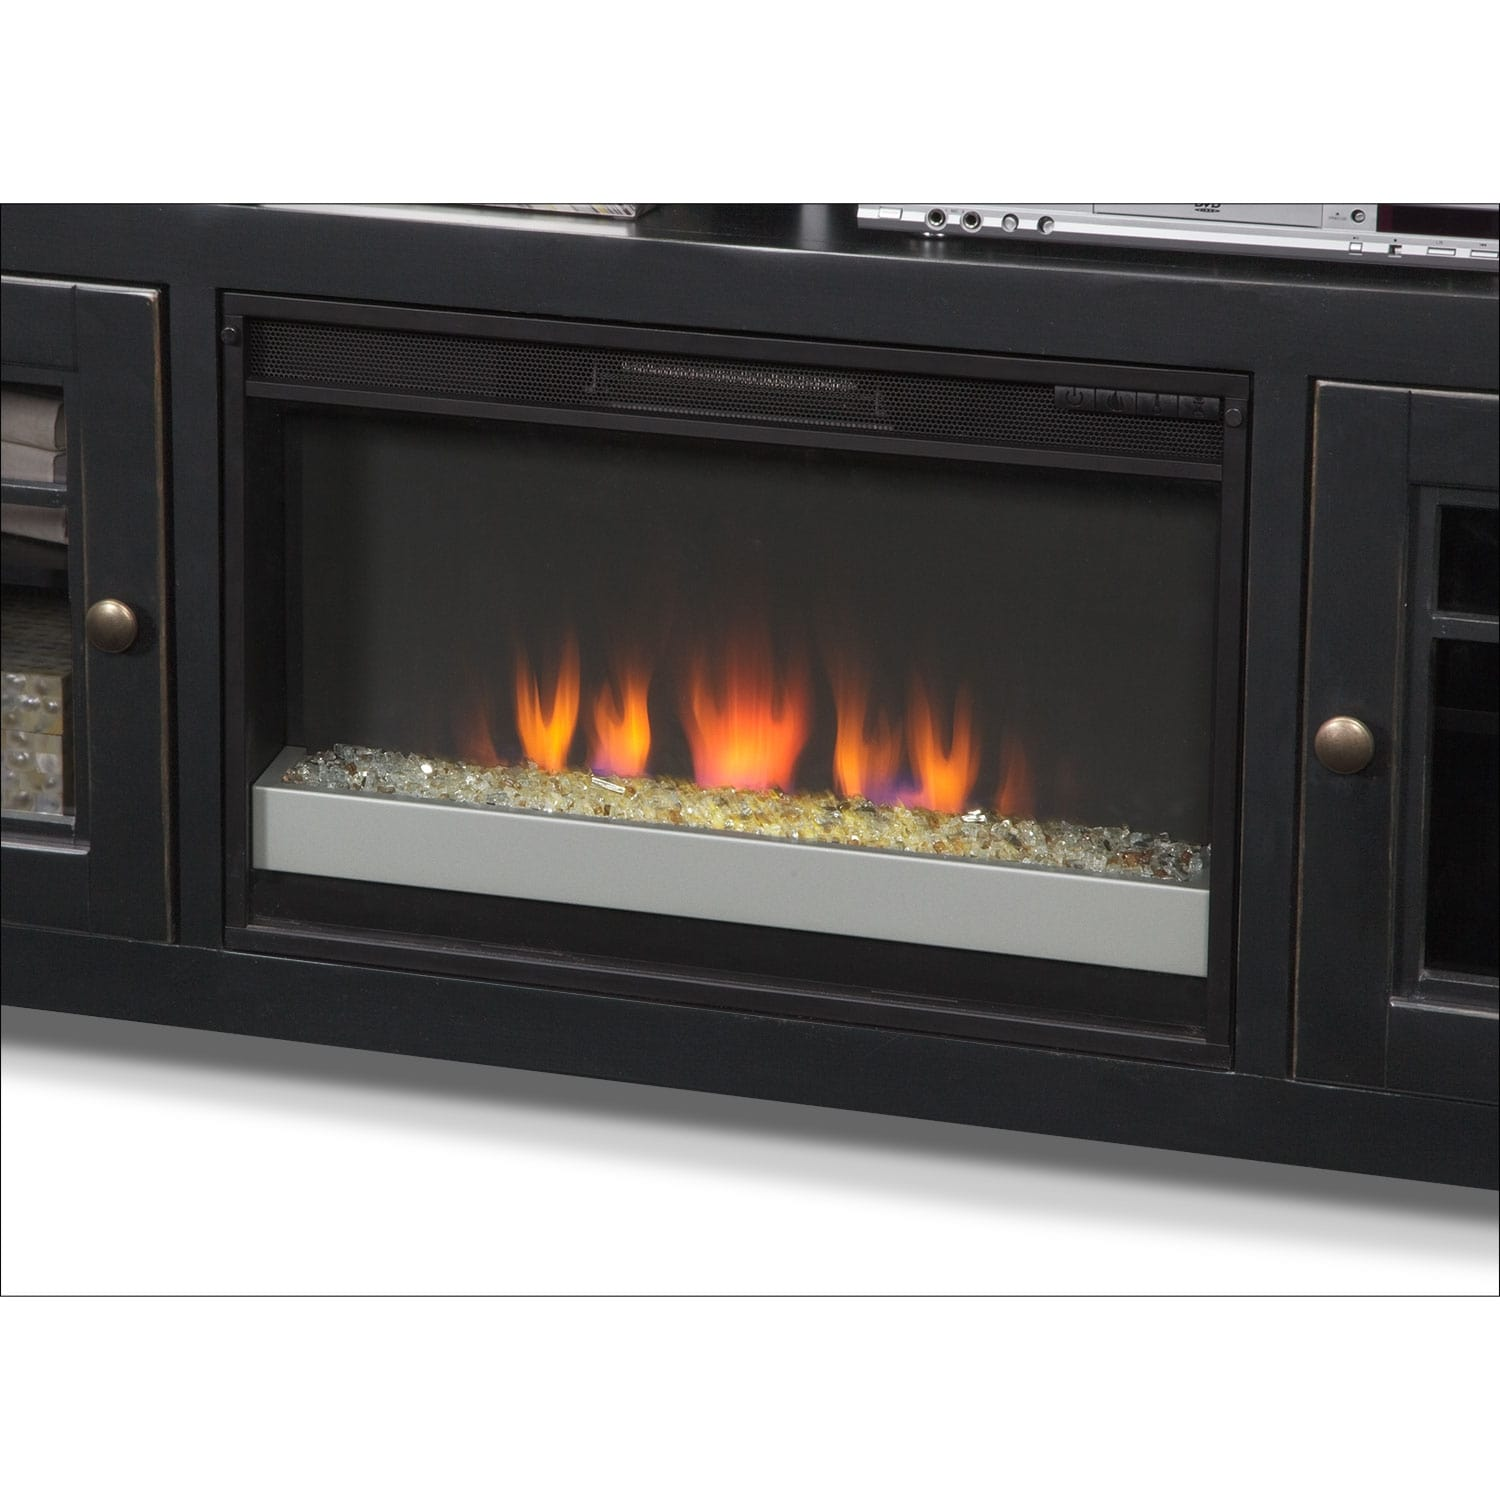 Merrick Black 74 Fireplace Tv Stand Value City Furniture